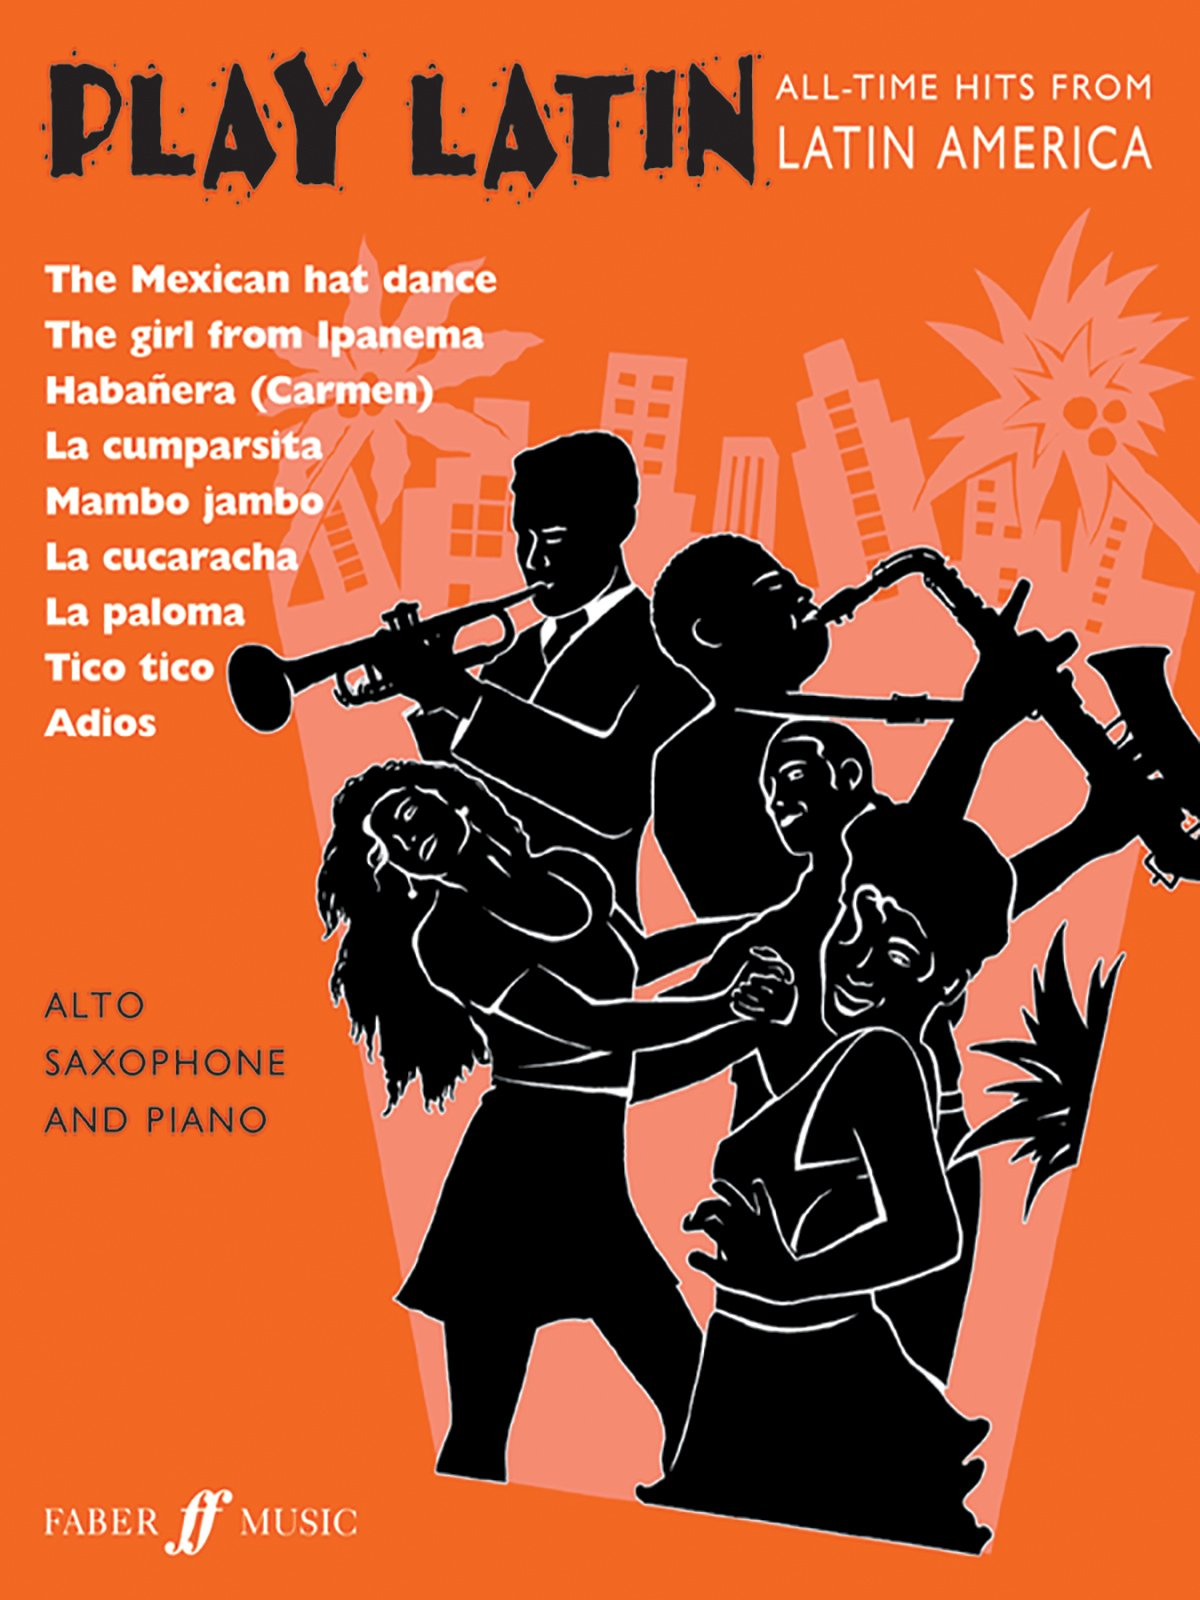 Download Play Latin Alto Saxophone: All-Time Hits from Latin America (Faber Edition: Play Latin) PDF